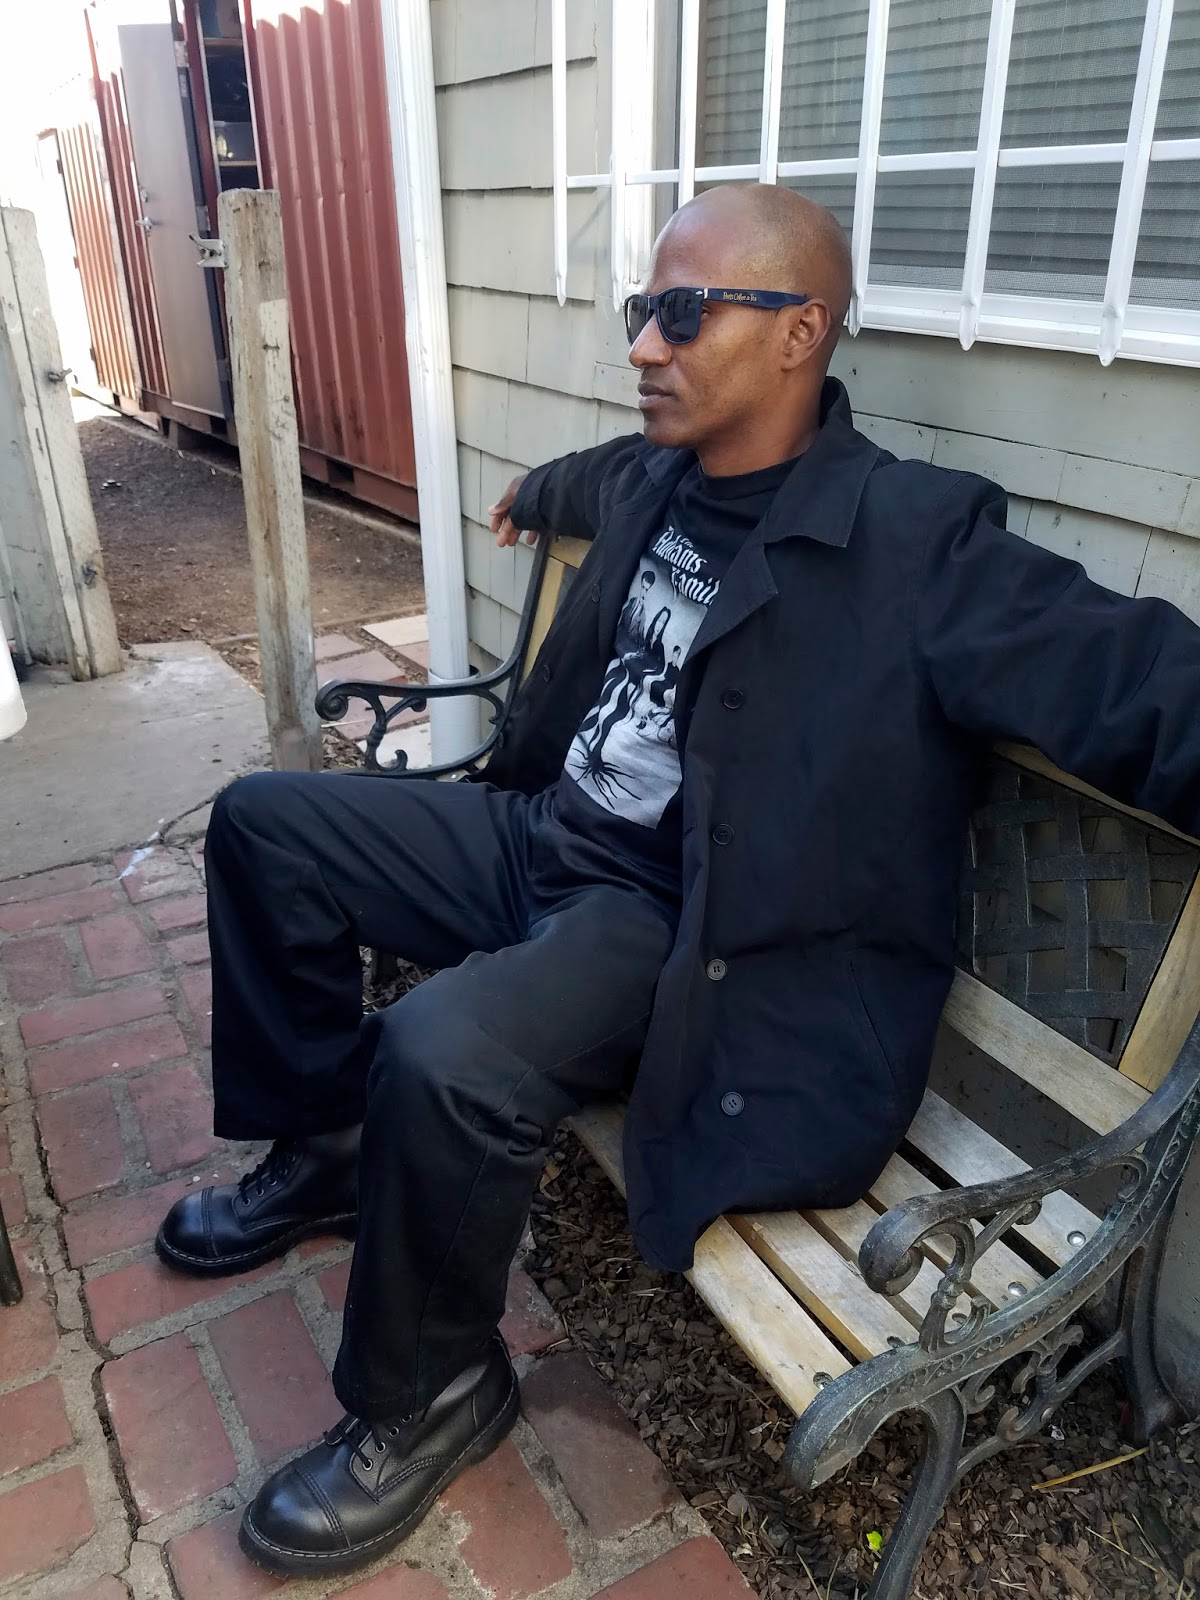 Active On The Creative Writing & Spoken Word Tips Since The Early 1990s  Author Of 3 Books [ Boneyard, Unwritten Law